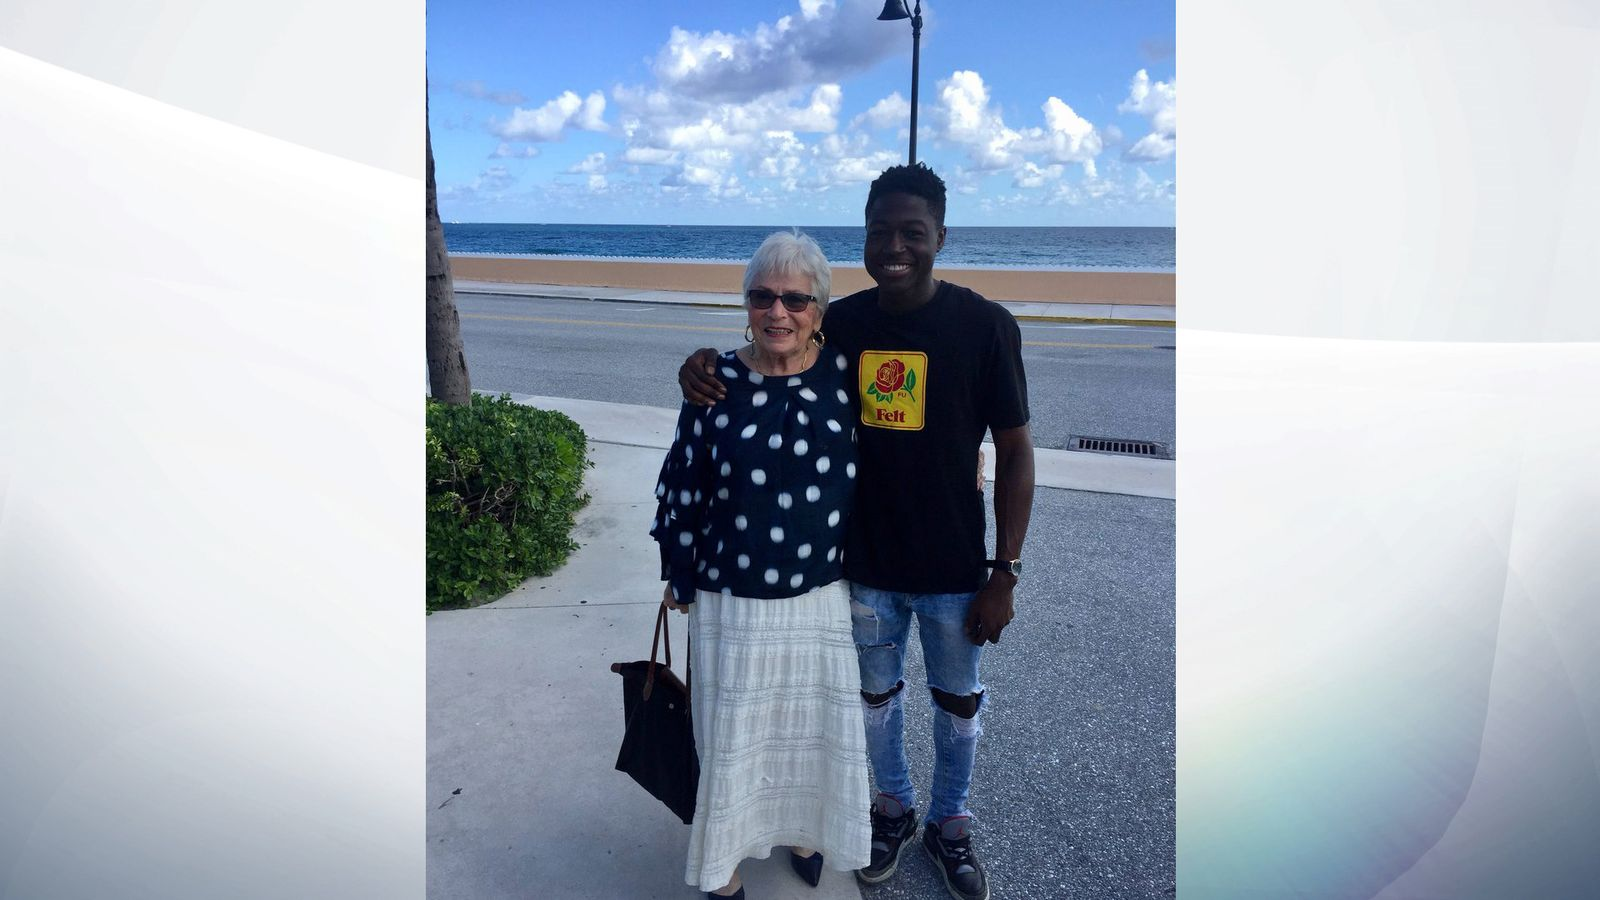 Rapper meets 80yr old 'Words with Friends' player after 300+ games together.